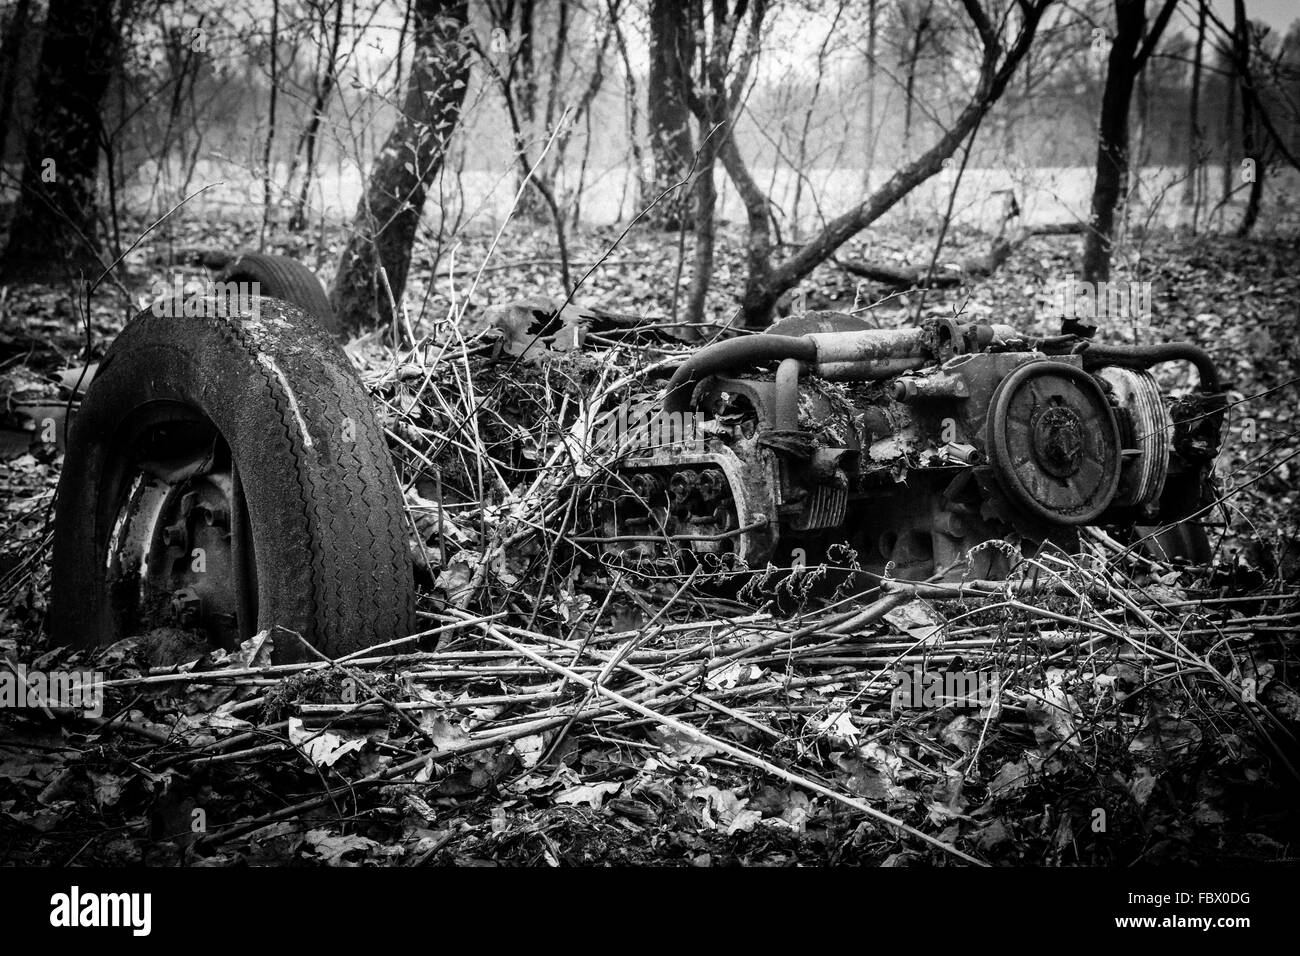 Car wreck in forest - Stock Image